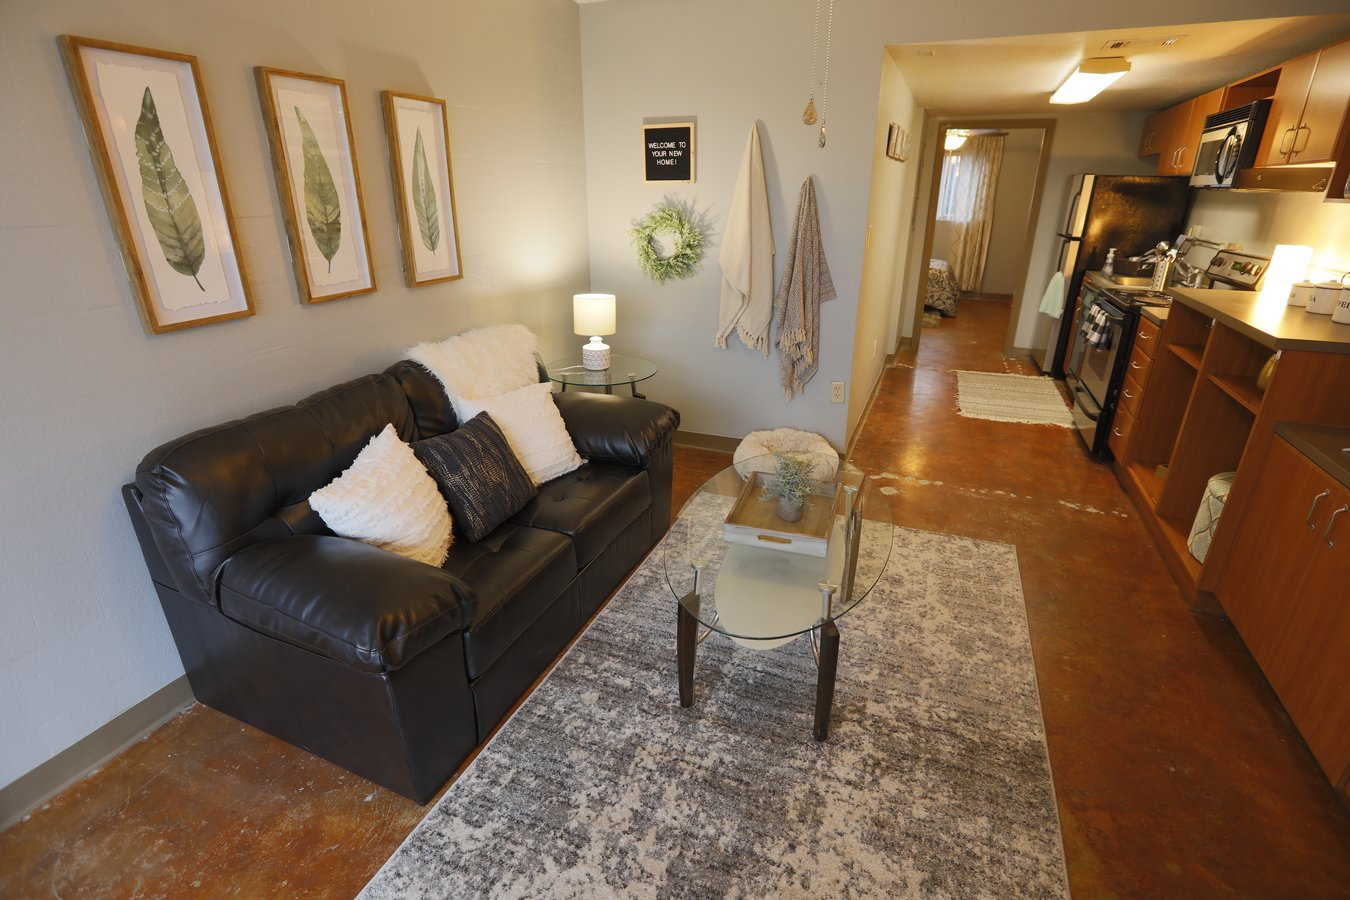 1 Bedroom 1 Bathroom Apartment for rent at University Lofts in Tallahassee, FL